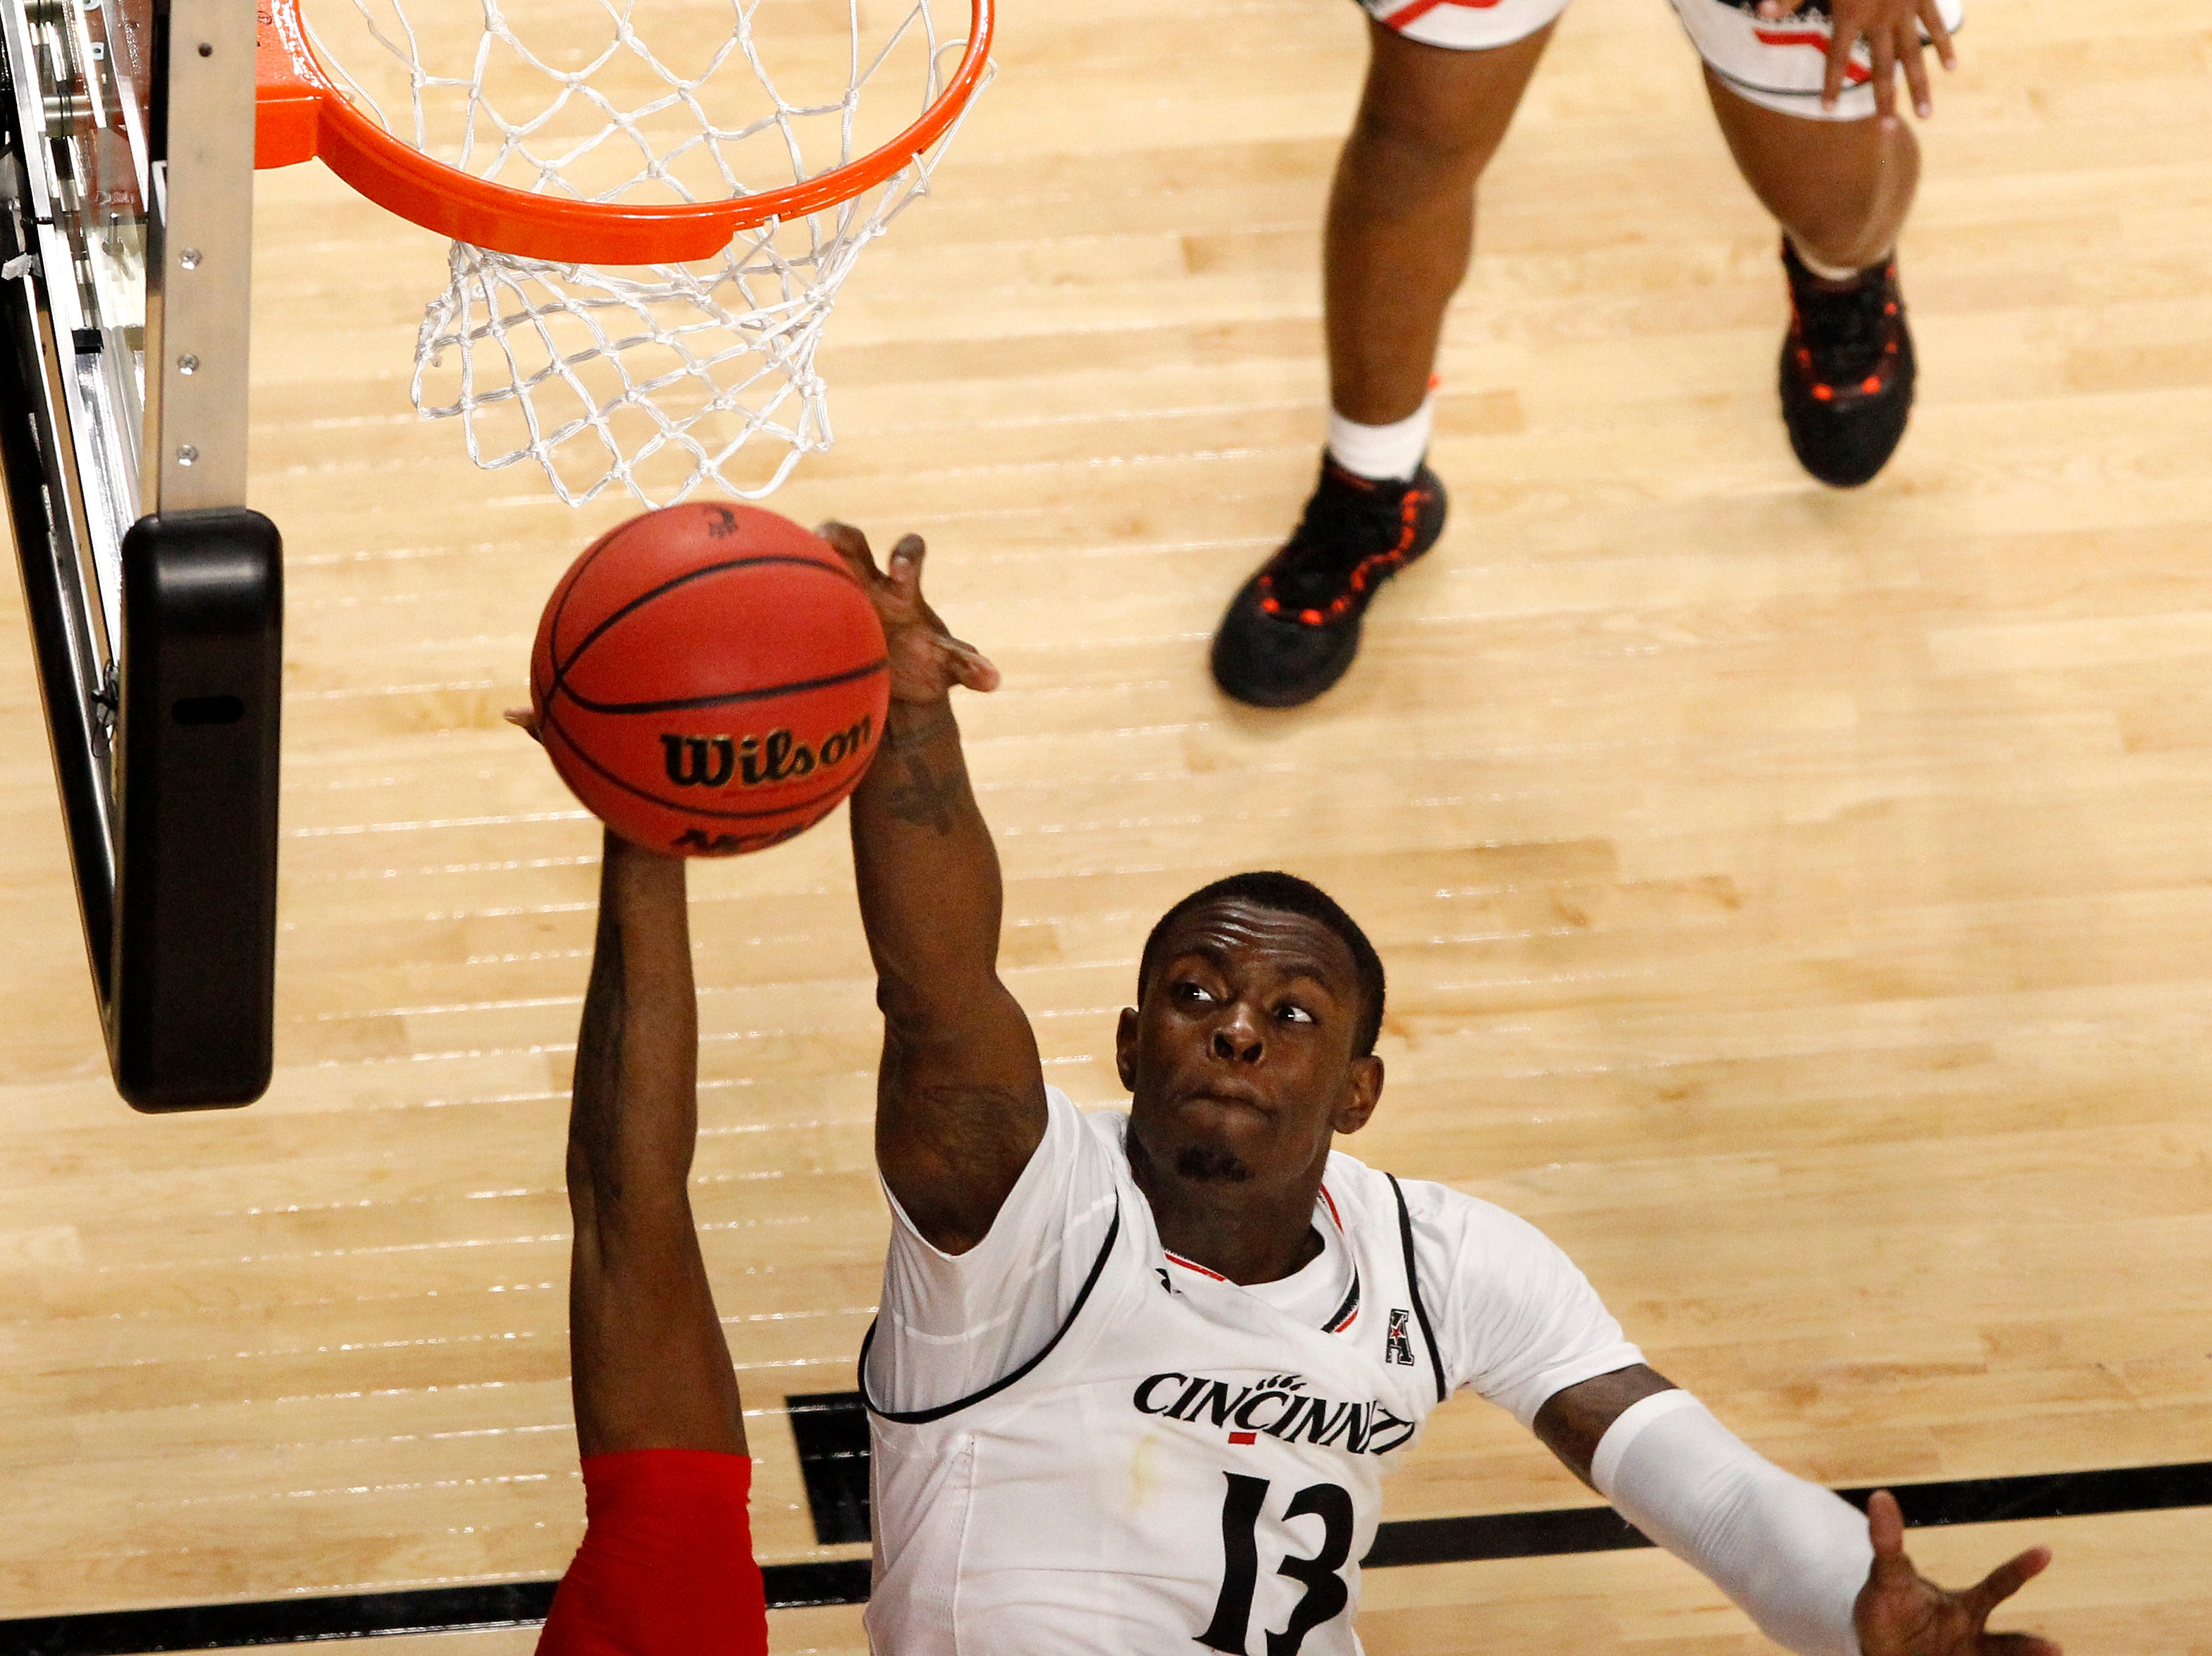 Cincinnati Bearcats forward Tre Scott (13) blocks a shot in the second half of a college basketball game between the Ohio State Buckeyes and the Cincinnati Bearcats, Wednesday, Nov. 7, 2018, at Fifth Third Arena in Cincinnati.